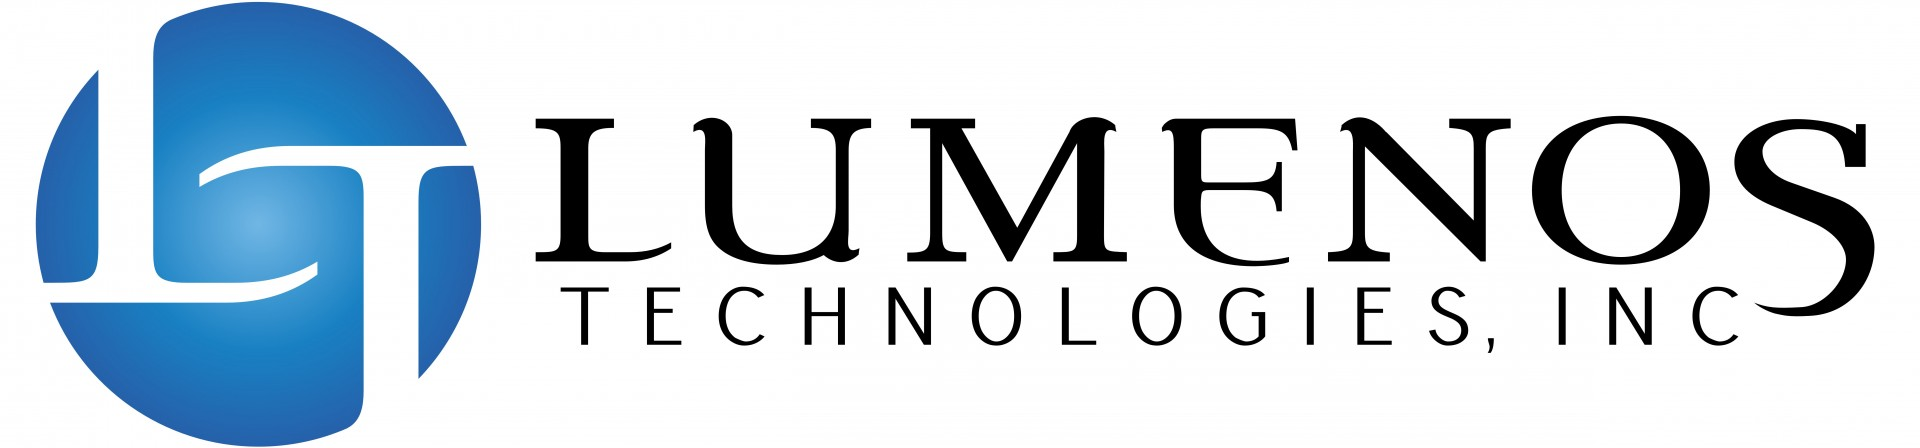 Lumenos Technologies Inc